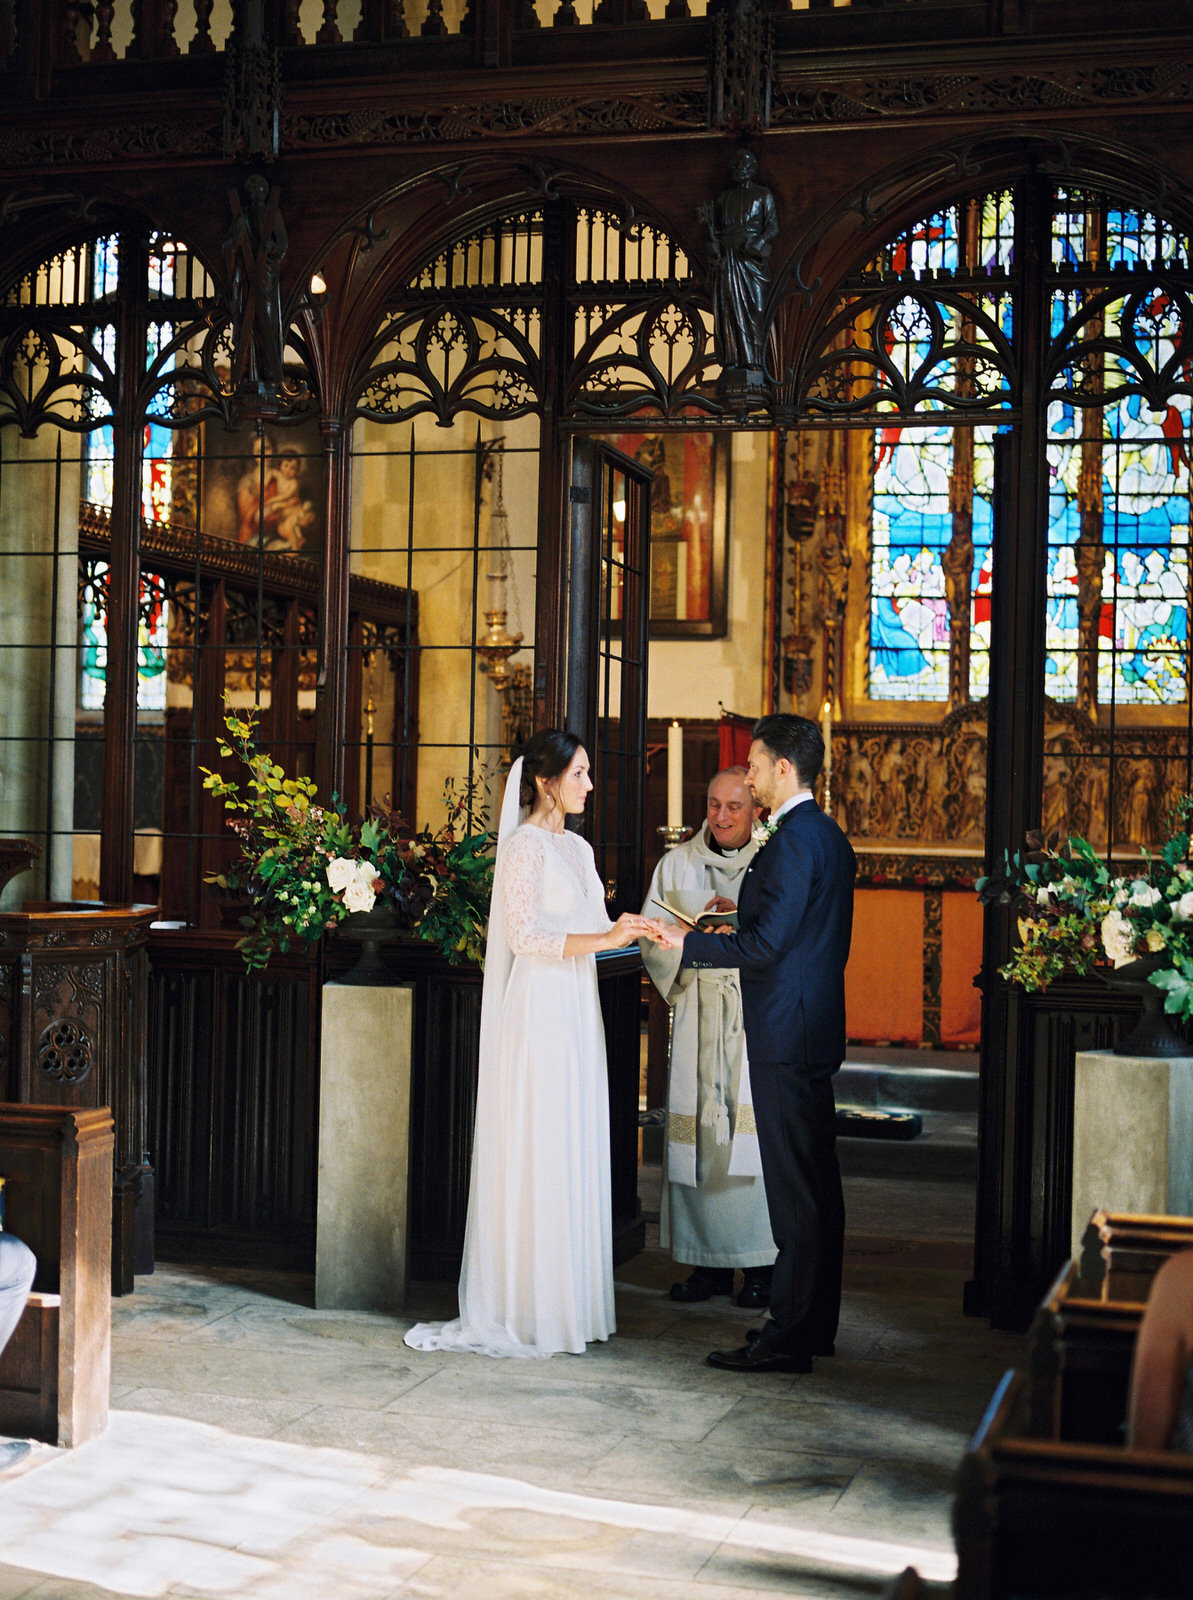 st giles church, bride and groom vows